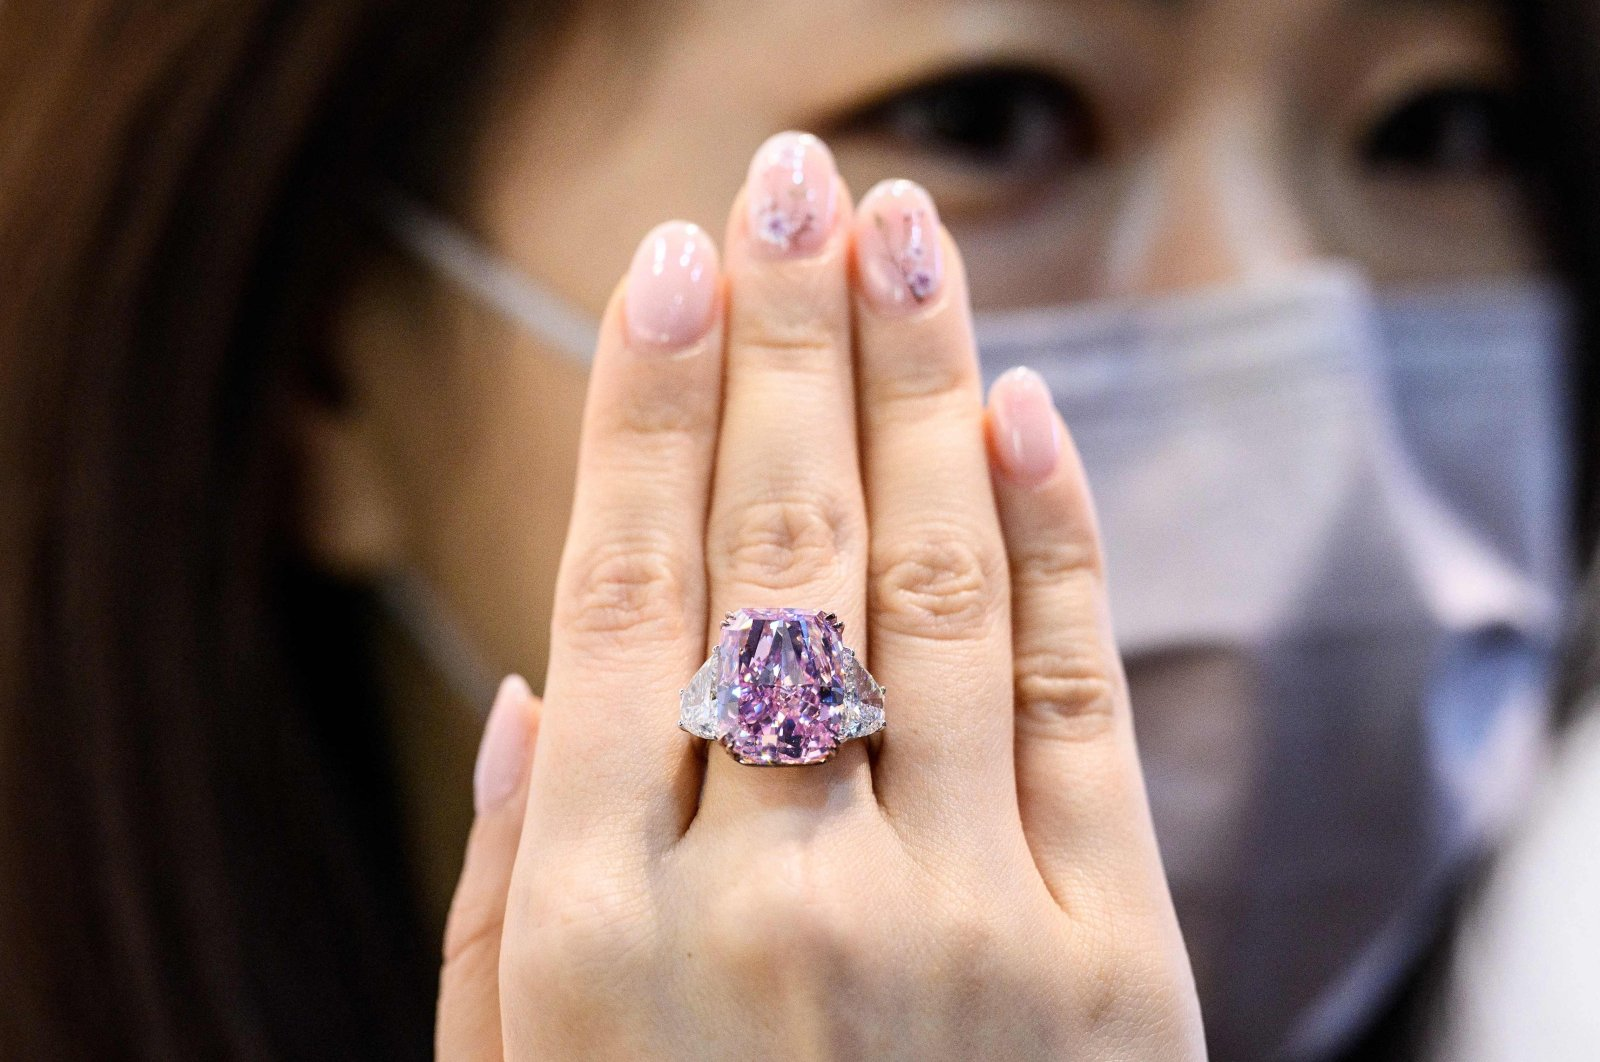 A woman displays the Sakura Diamond, a 15.81 carat fancy vivid purple-pink diamond ring, during a Christies pre-auction preview in Hong Kong, May 20, 2021. (AFP Photo)